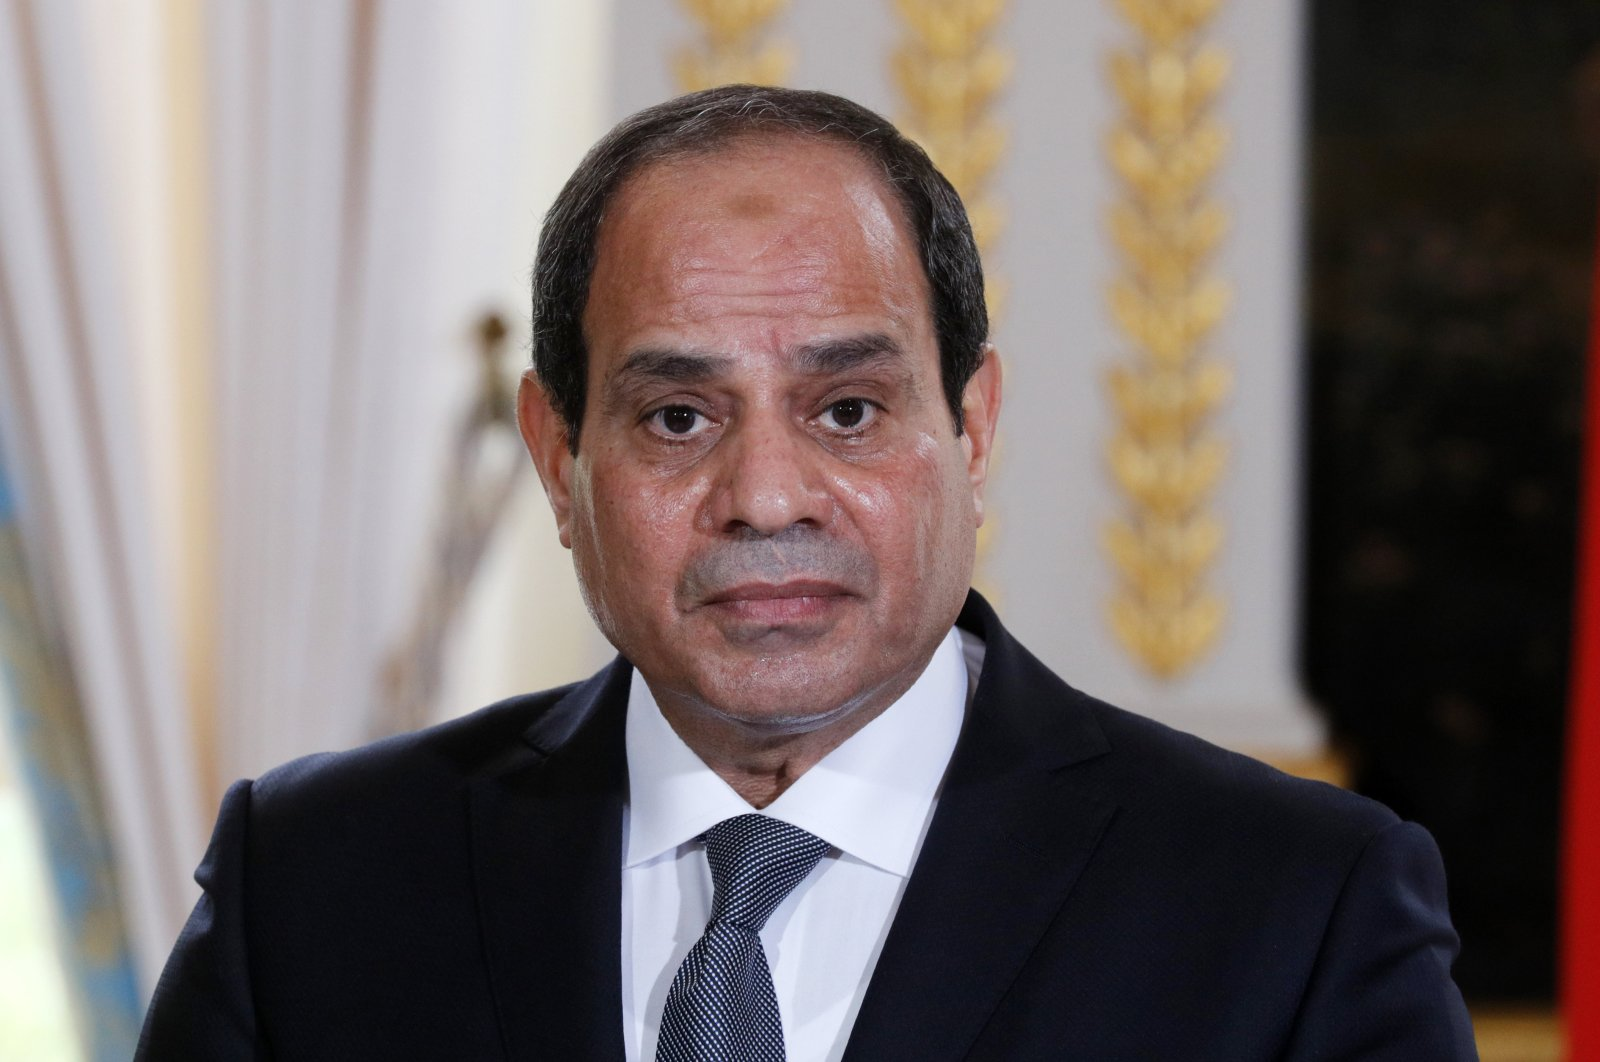 Egyptian President Abdel Fattah el-Sissi attends a news conference with French President Emmanuel Macron, not pictured, at the Elysee Palace, in Paris, France, Oct. 24, 2017. (EPA Photo)